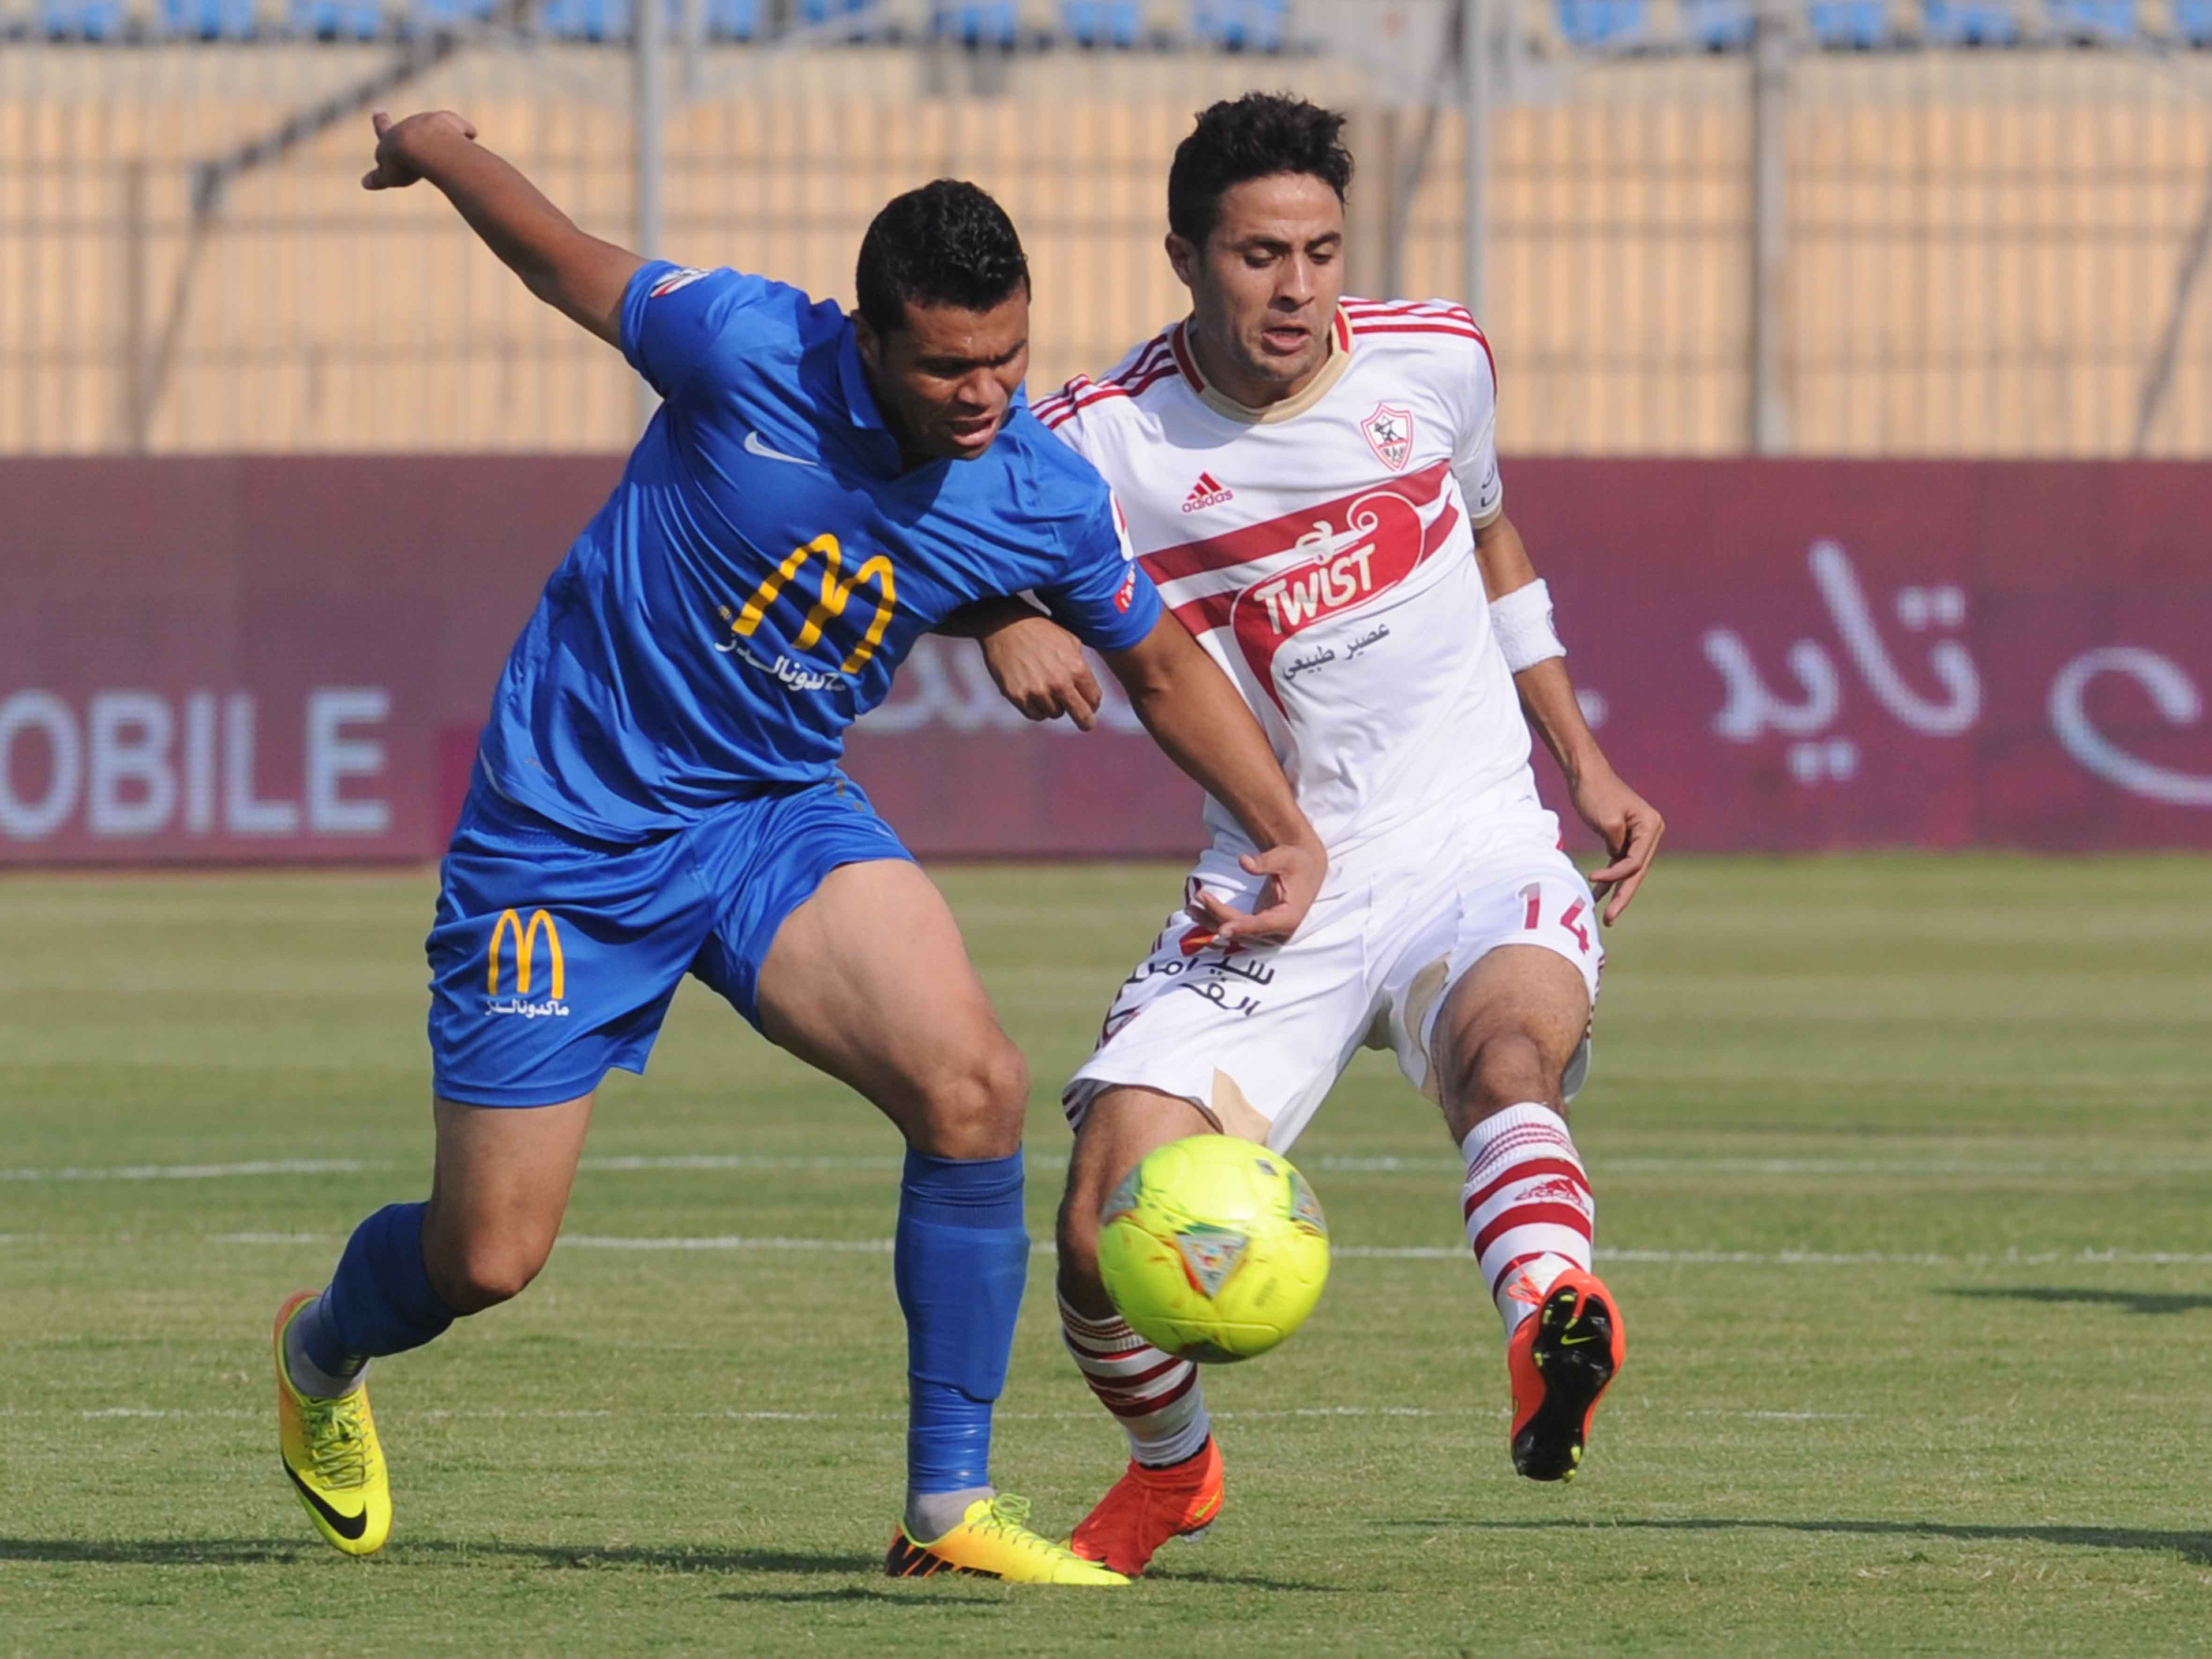 Saturday's match started off poorly for the White Knights, as El-Shorta opened the score after 15 minutes. Al-Zamalek bounced back, taking a 2-1 lead before half time. (Photo by Mohamed Omar)